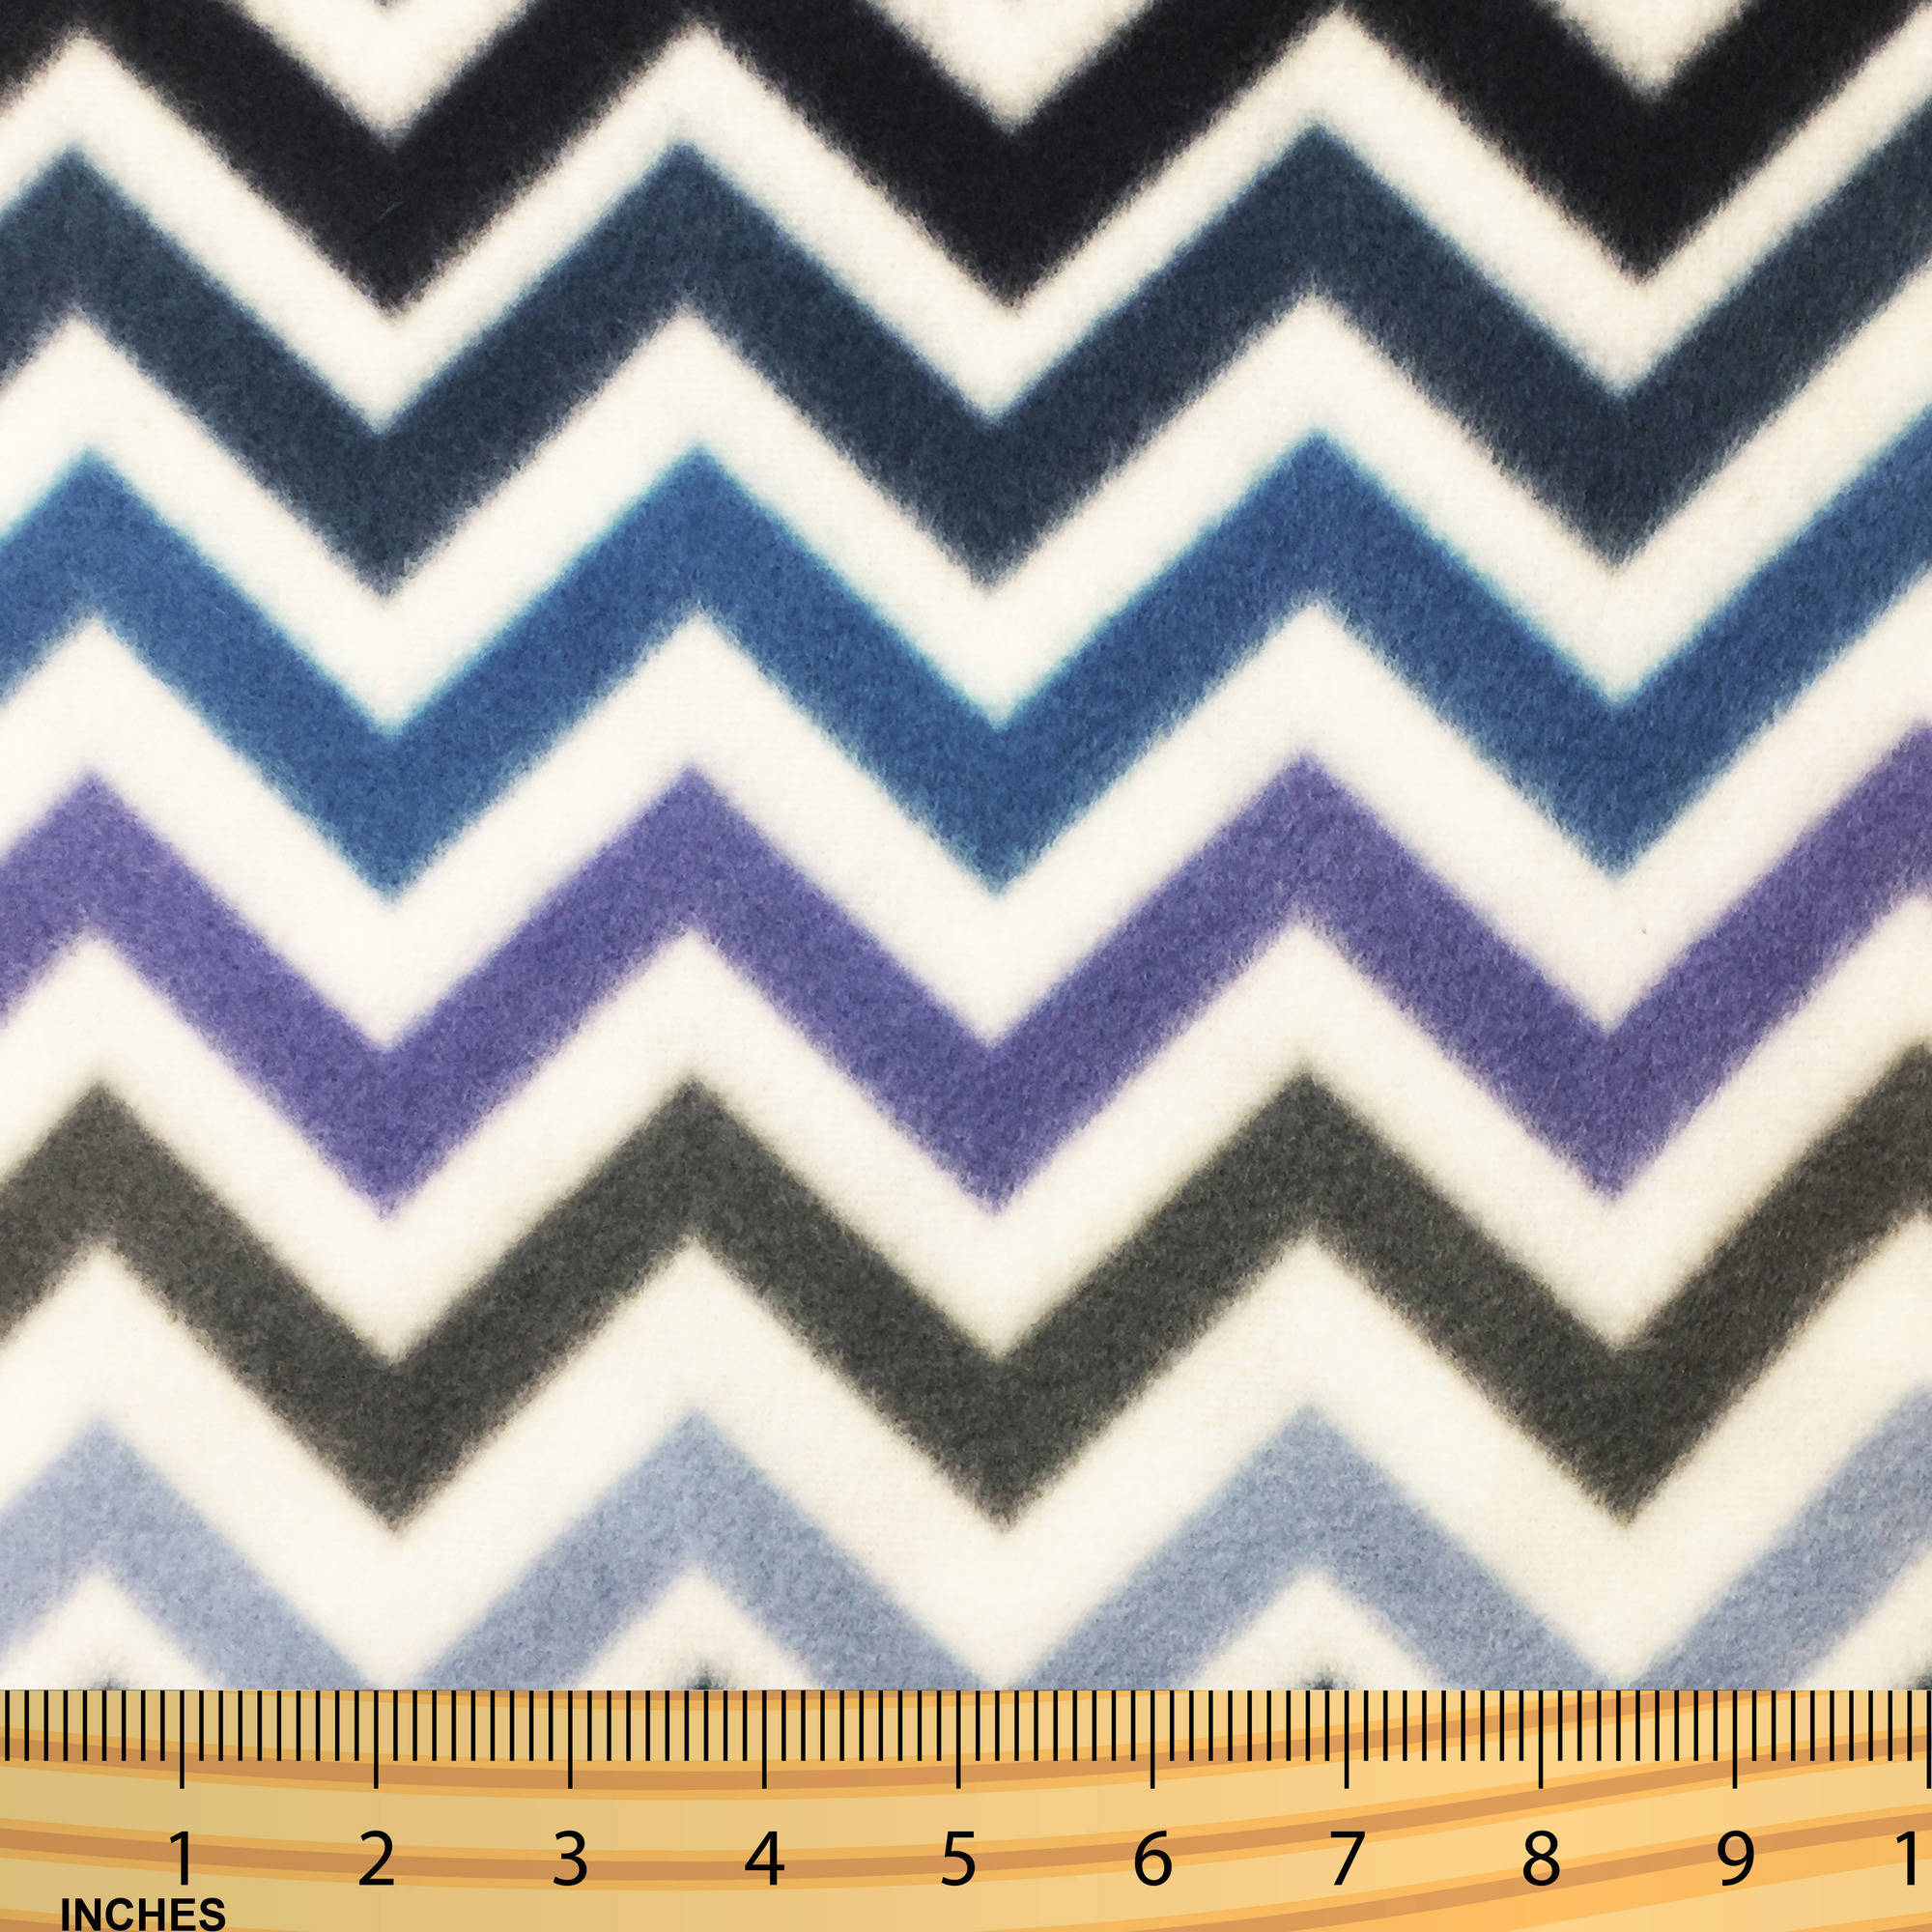 SHASON TEXTILE (2 Yards cut) POLAR FLEECE FABRIC 100% POLYESTER ANTI-PILL, New Home Decor Chevron, Available in Multiple Colors